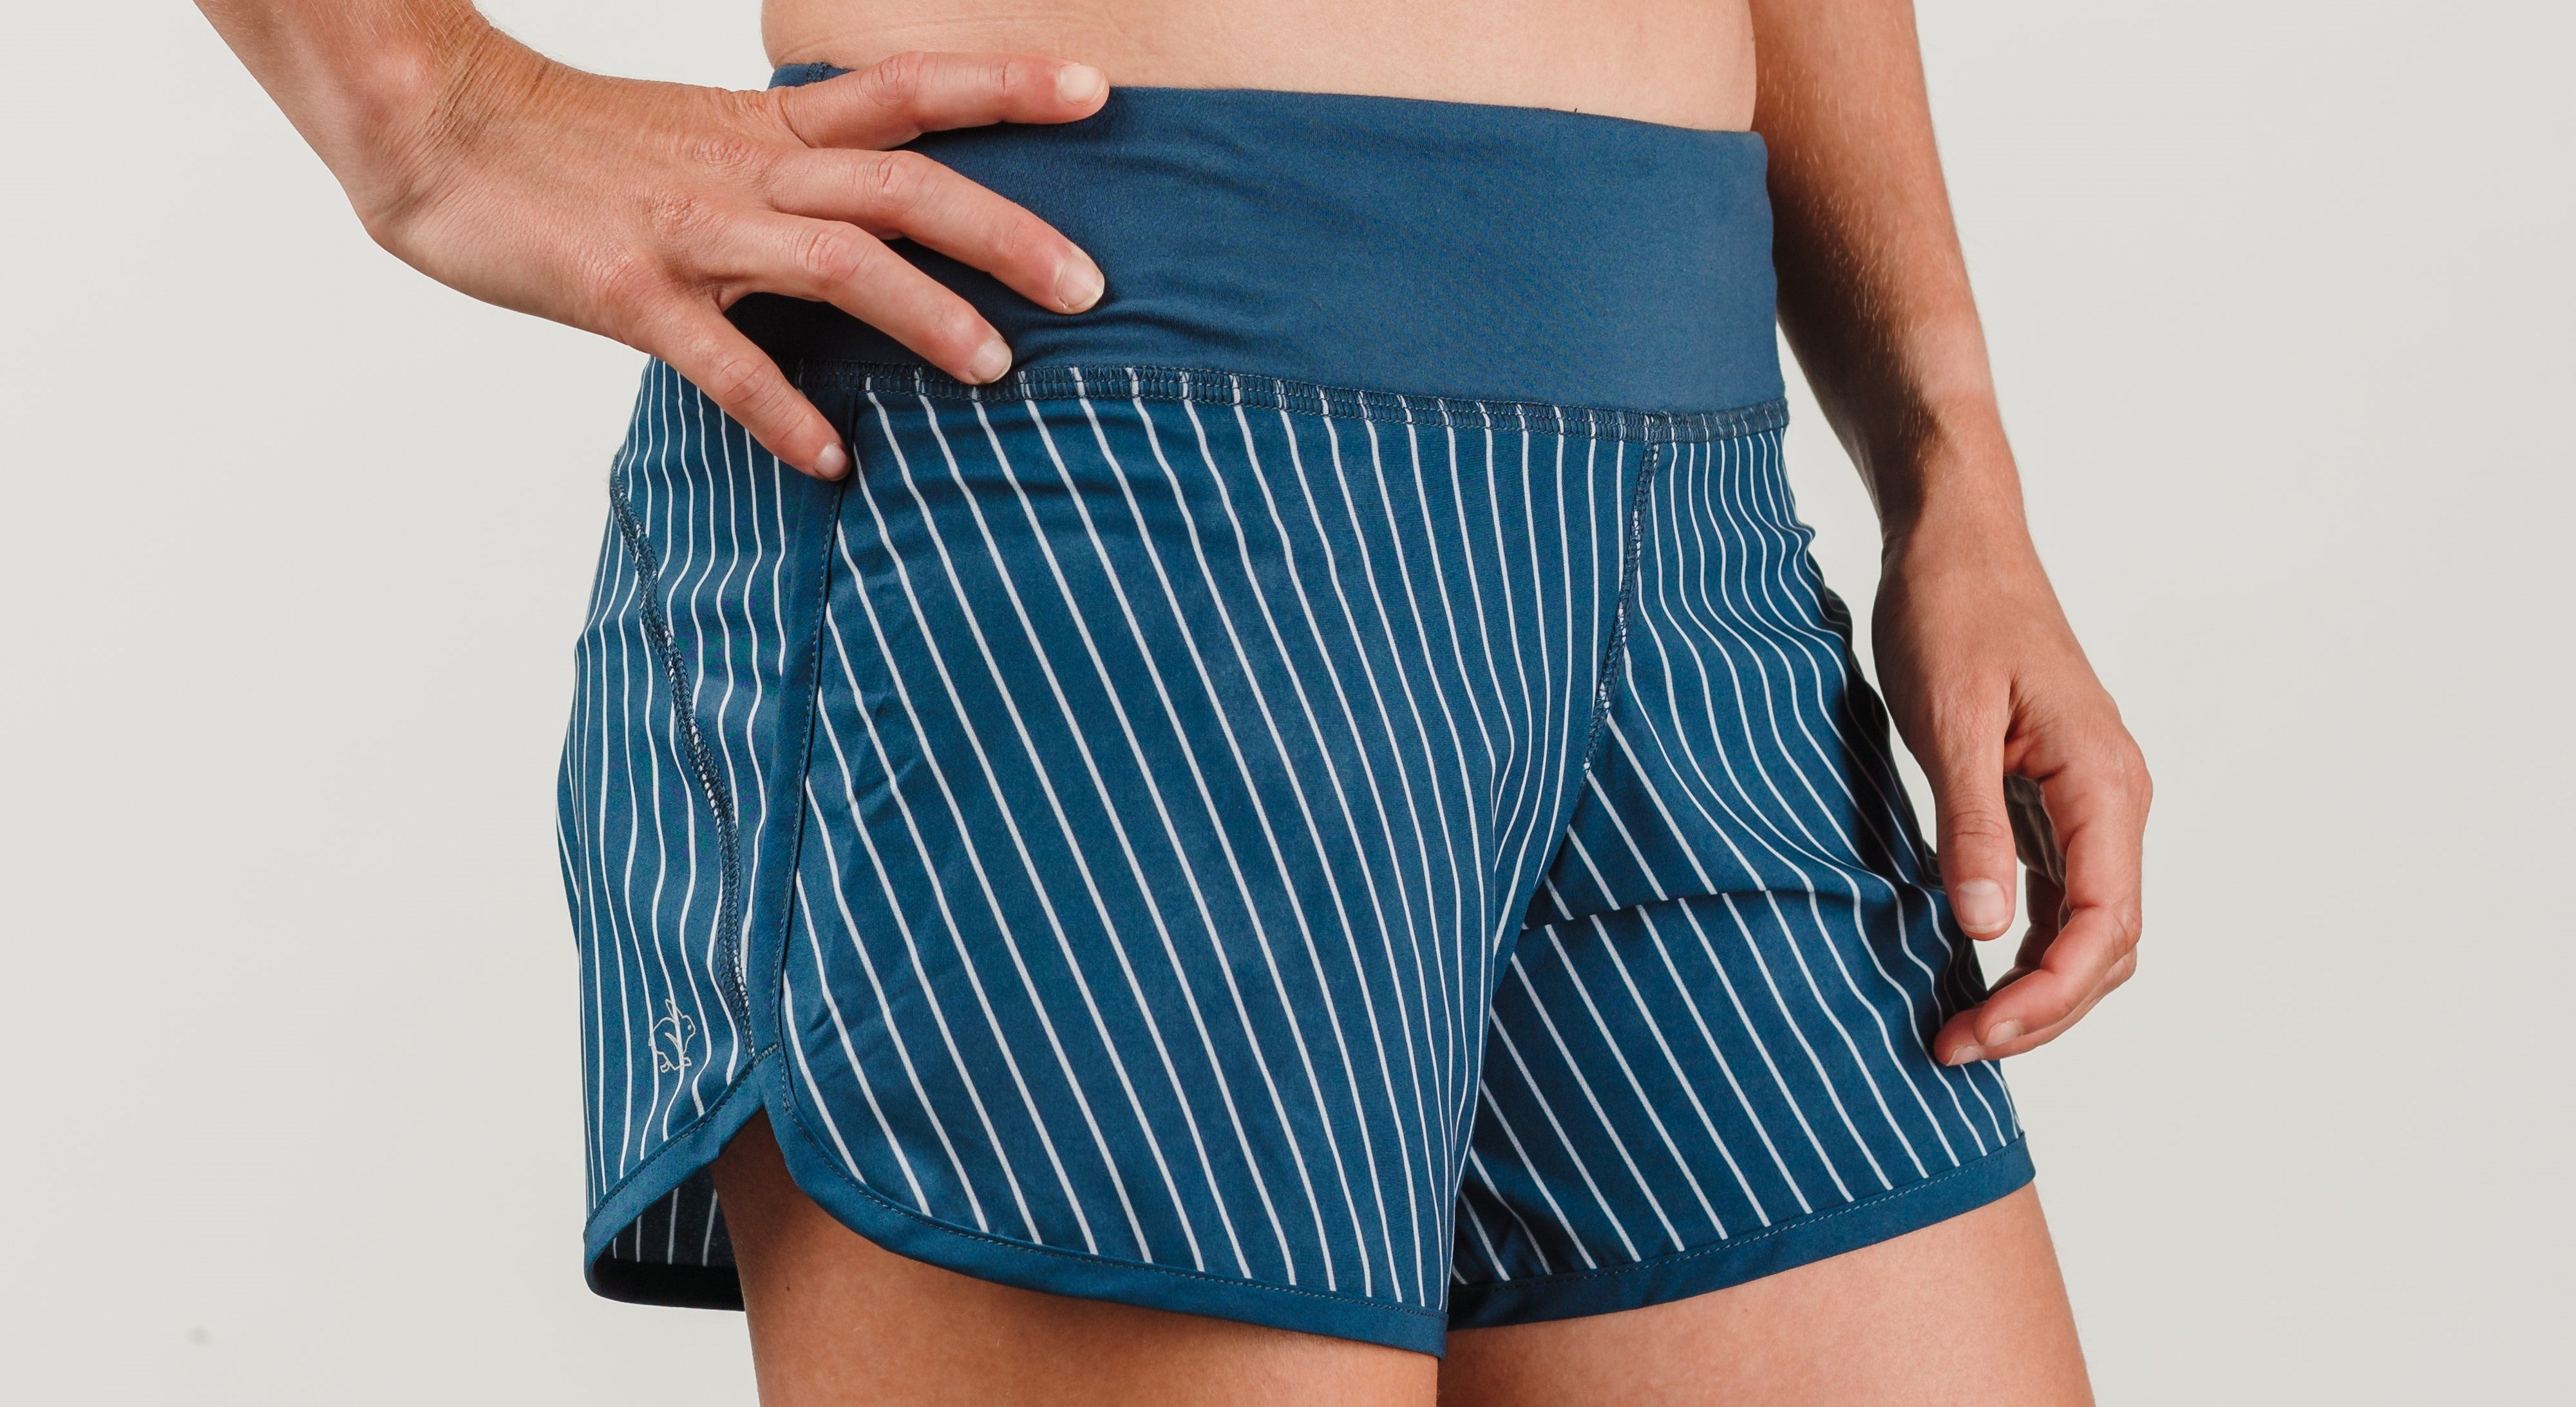 Blue running shorts with white pinstriping